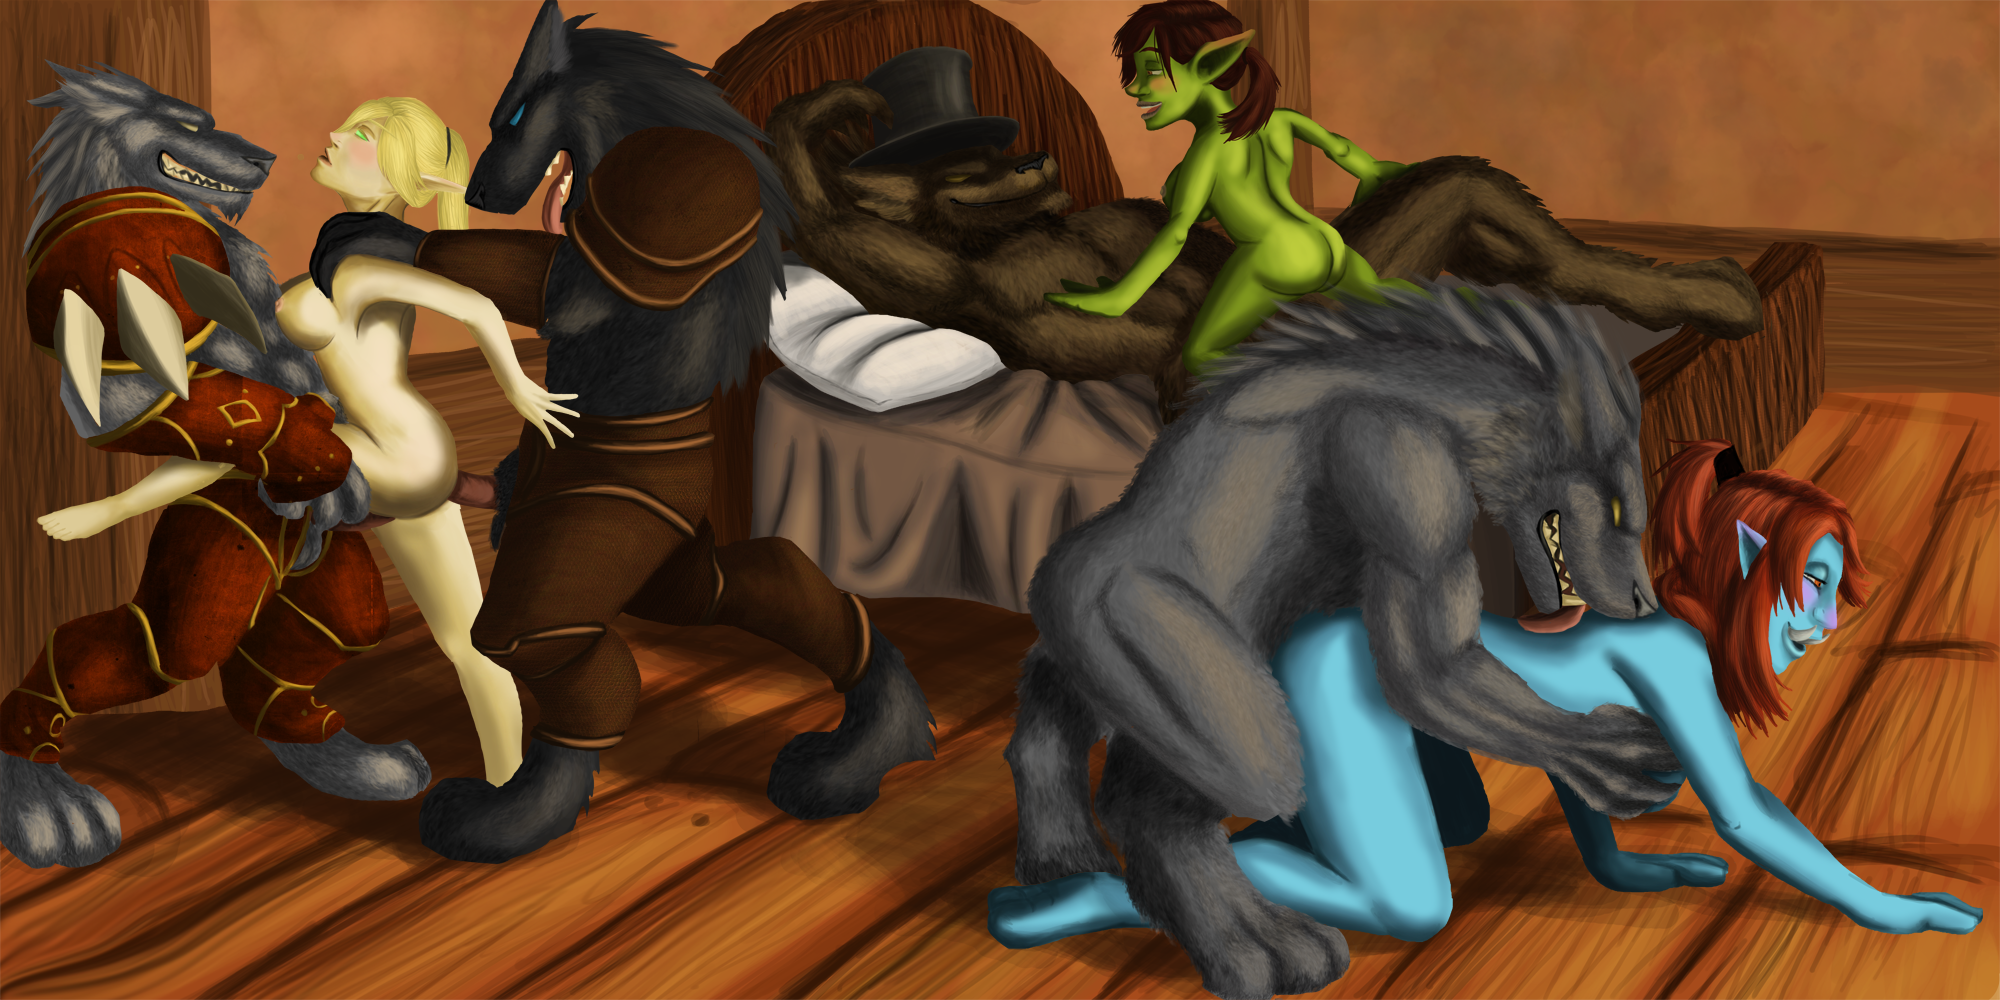 Blood elf and troll naked erotica picture